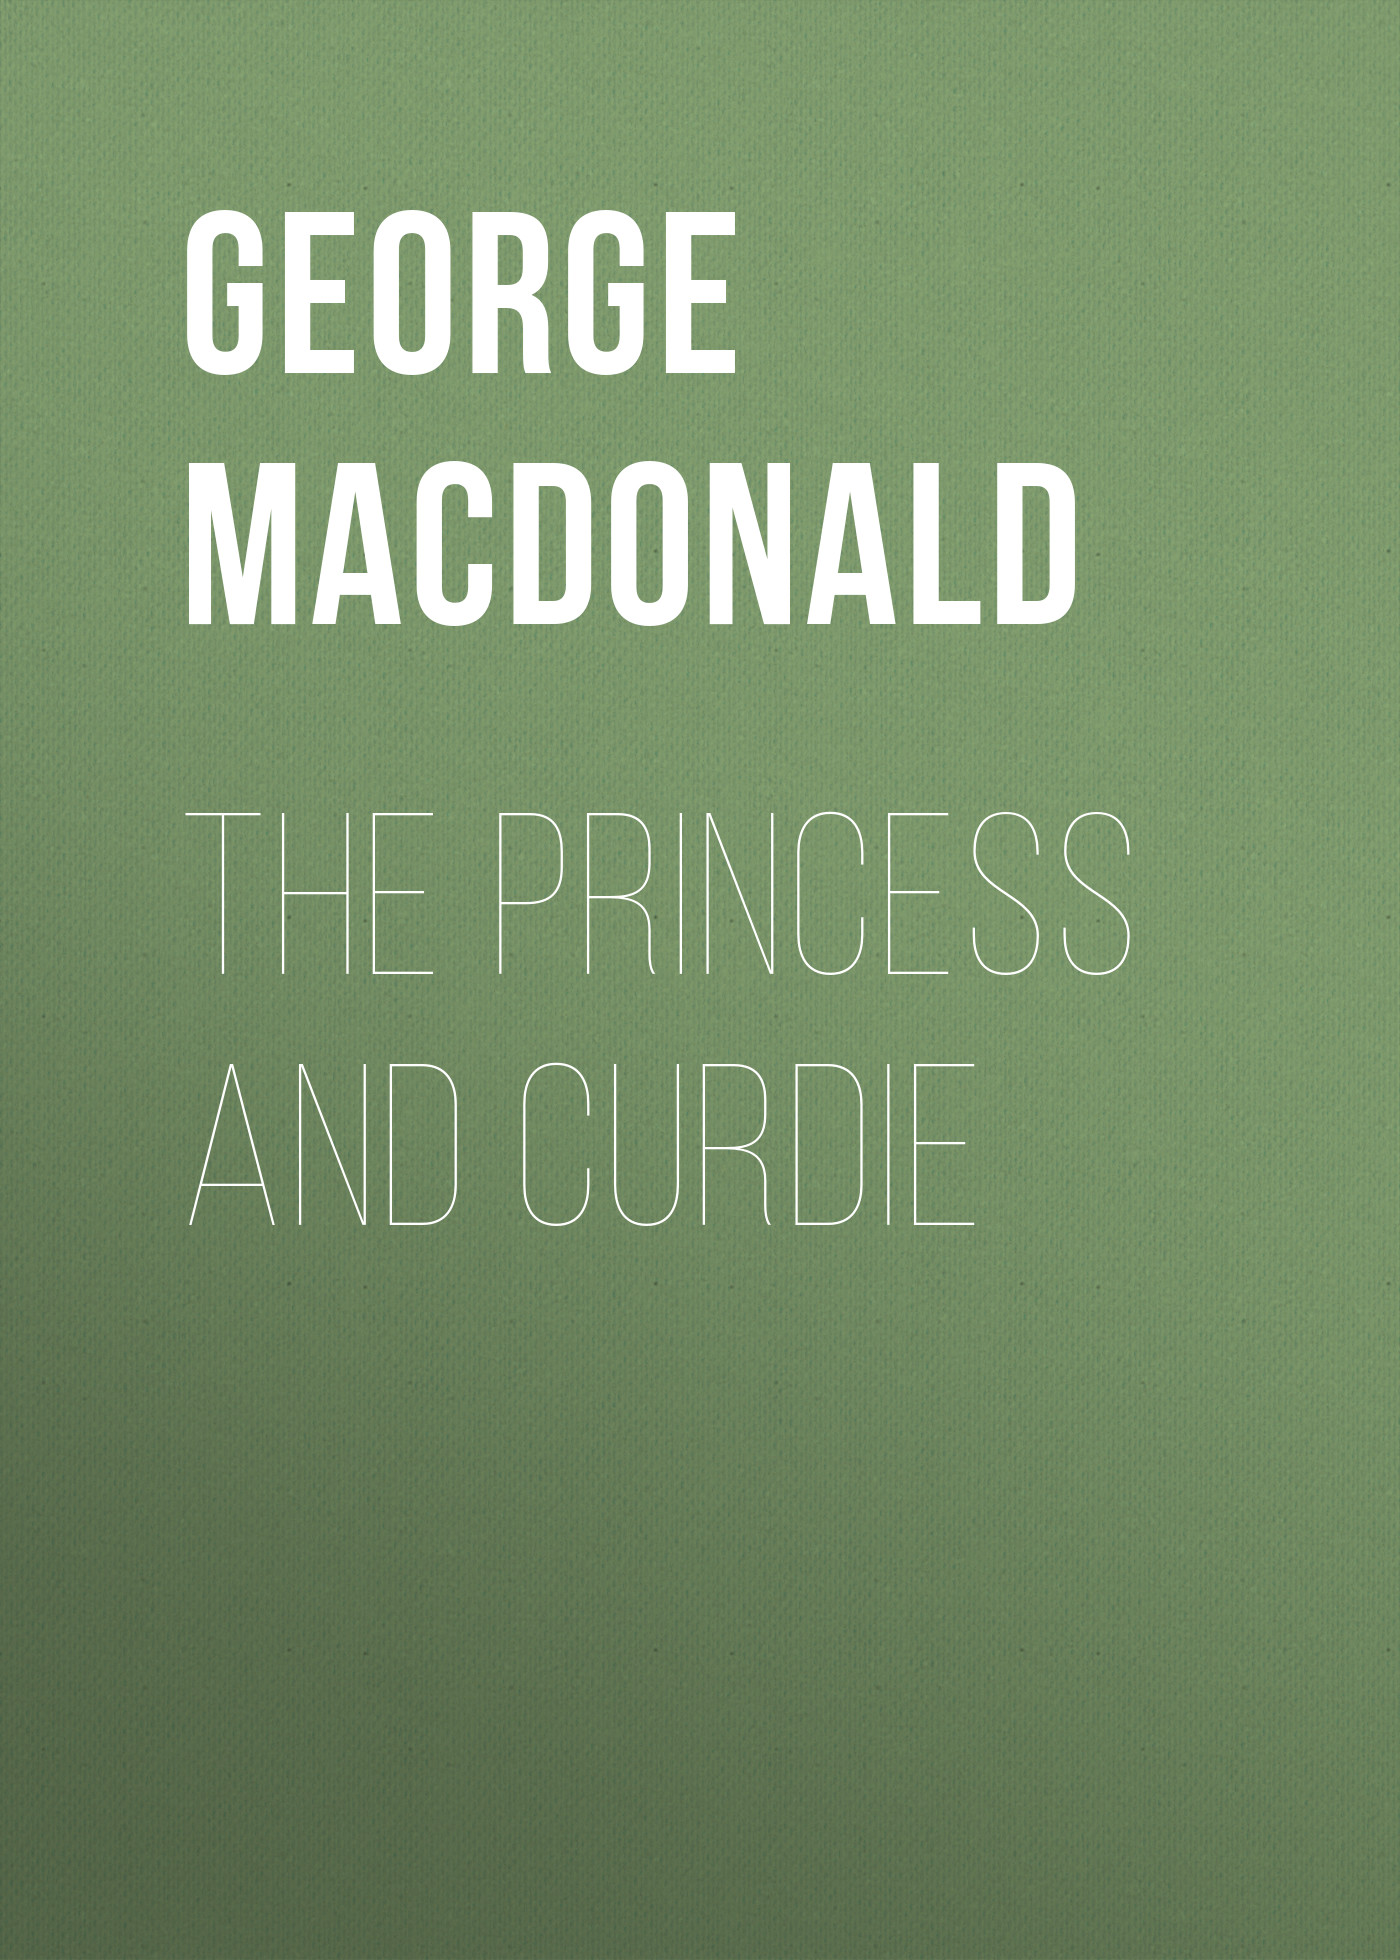 George MacDonald The Princess and Curdie george macdonald weighed and wanting